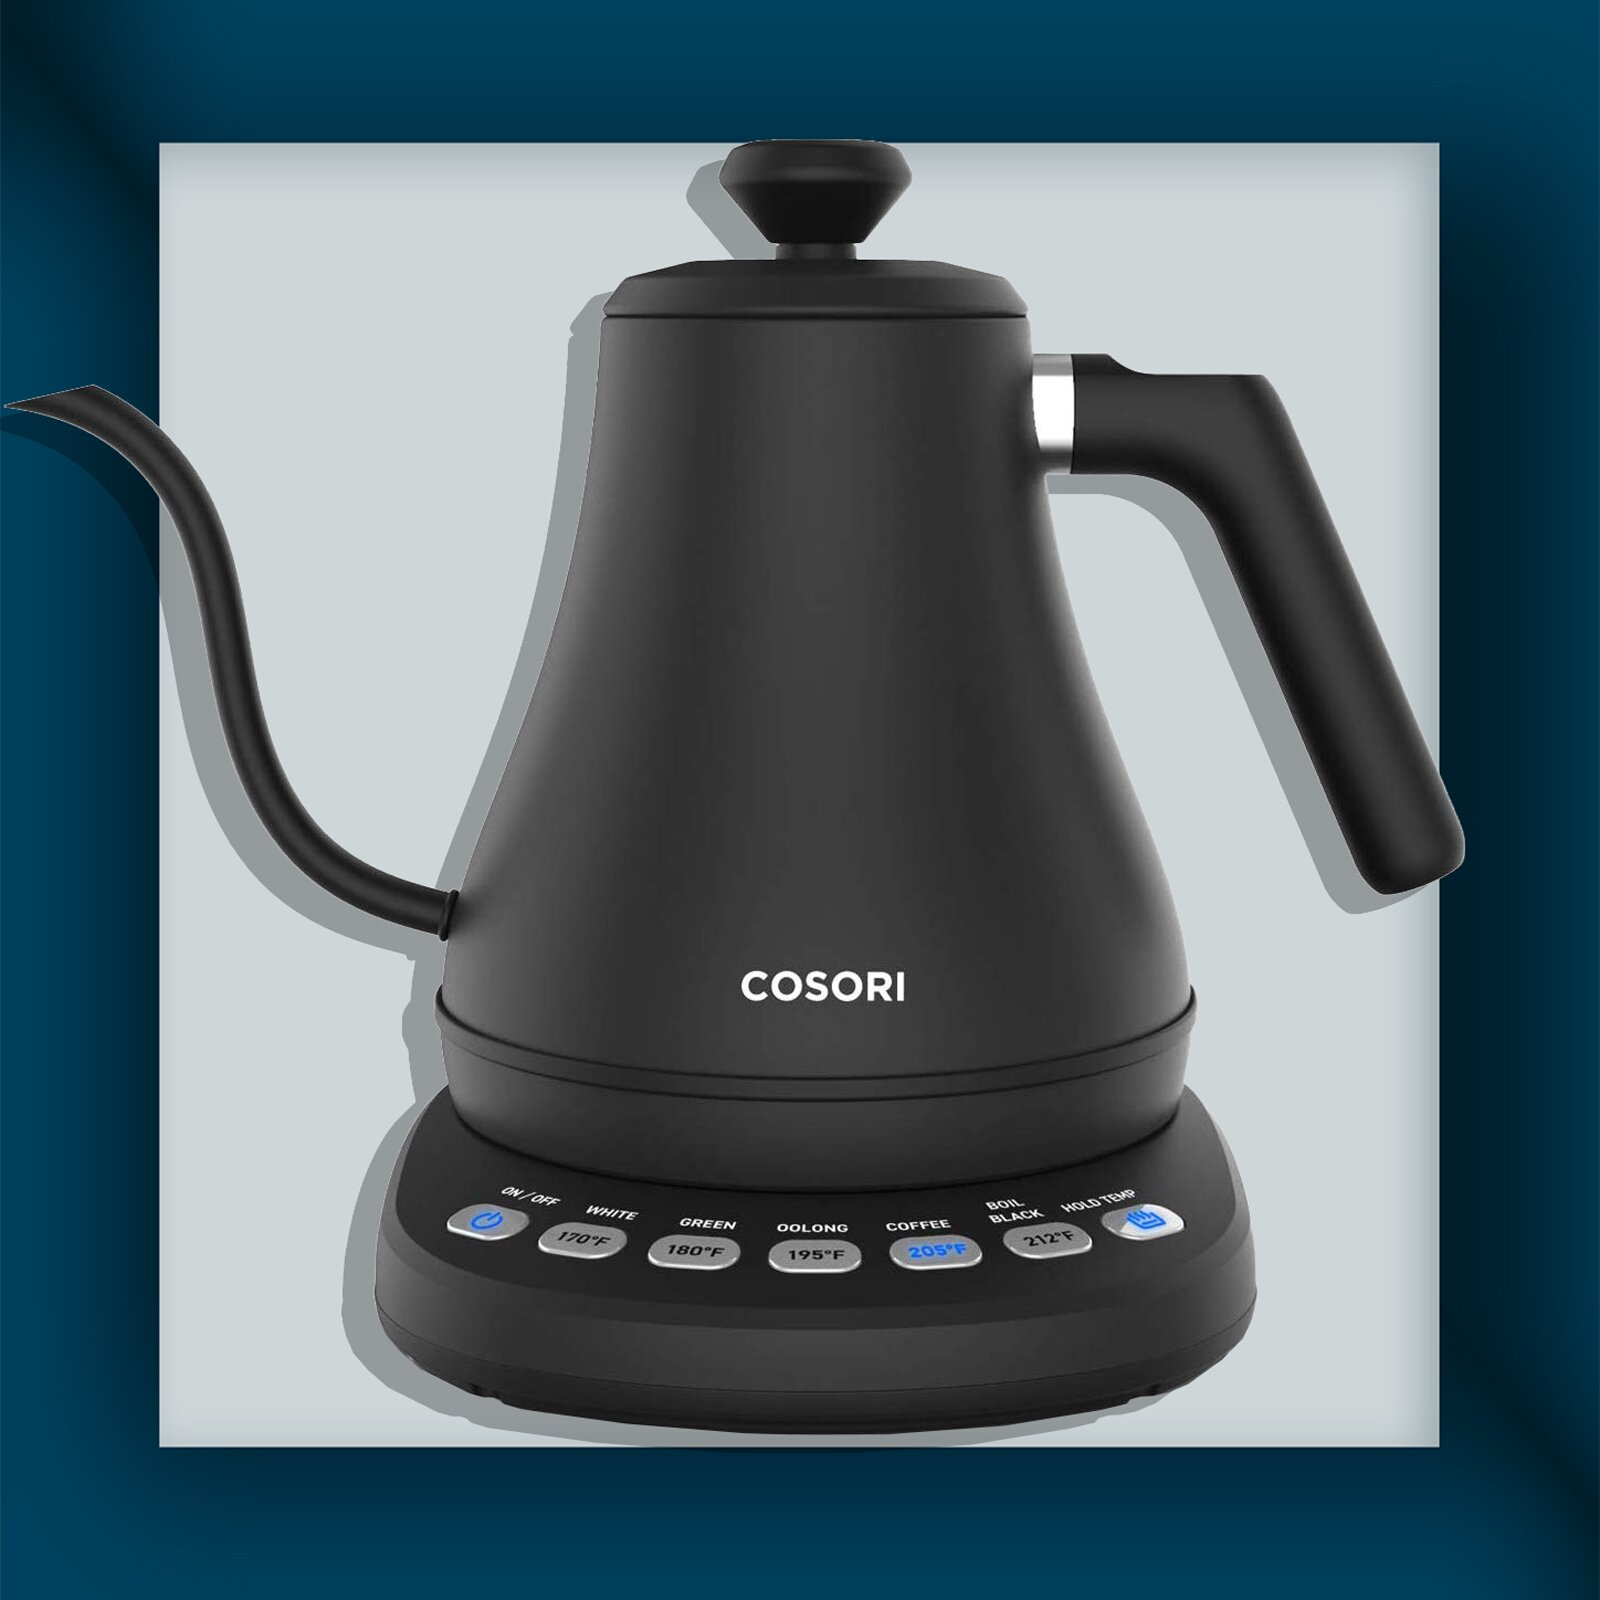 Cosori Electric Gooseneck Kettle